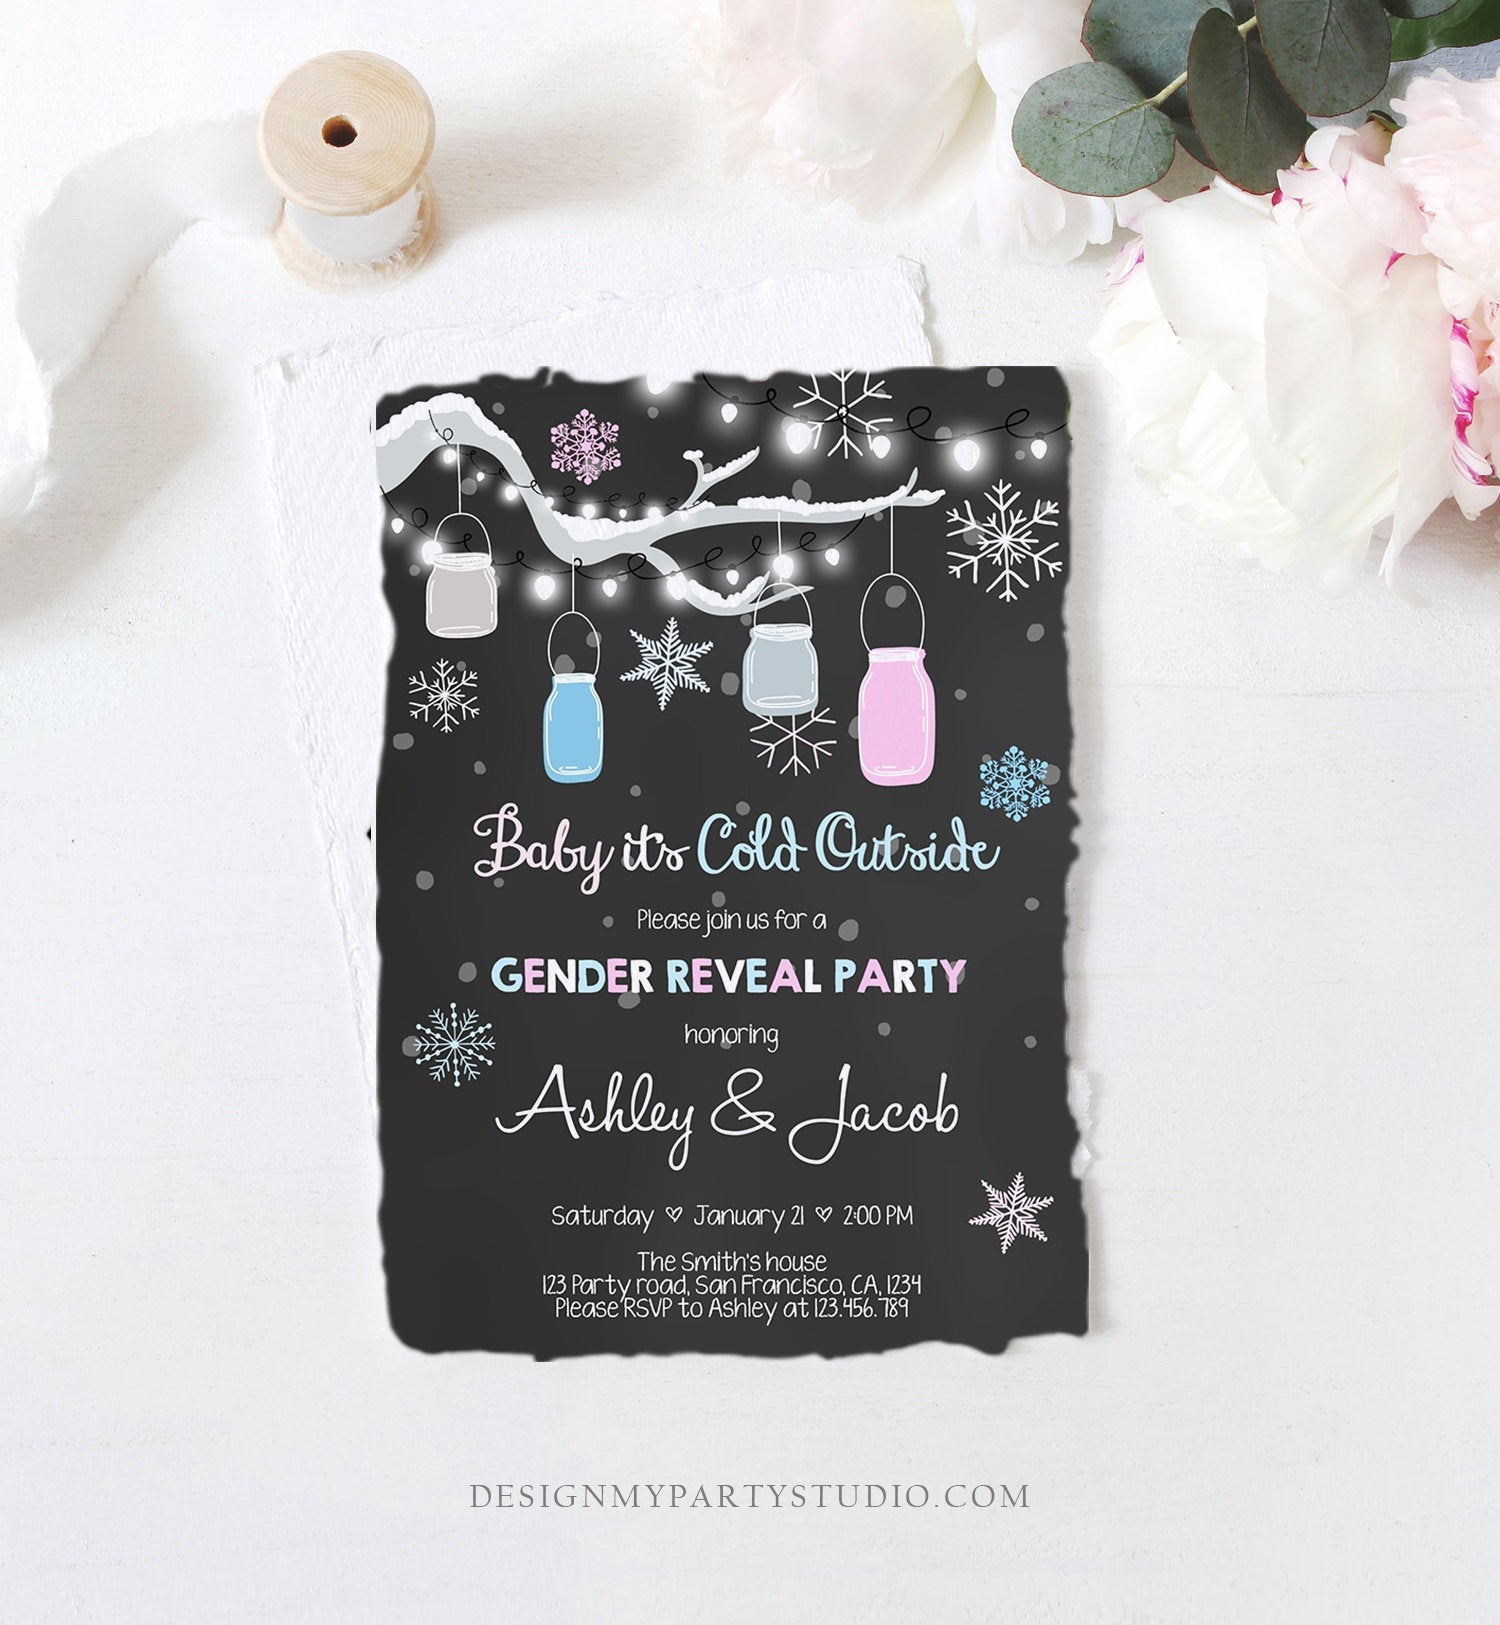 Editable Winter Gender Reveal Invitation Cold Outside Snow Boy or Girl He or She Chalk Rustic Template Invitation Download Corjl 0012